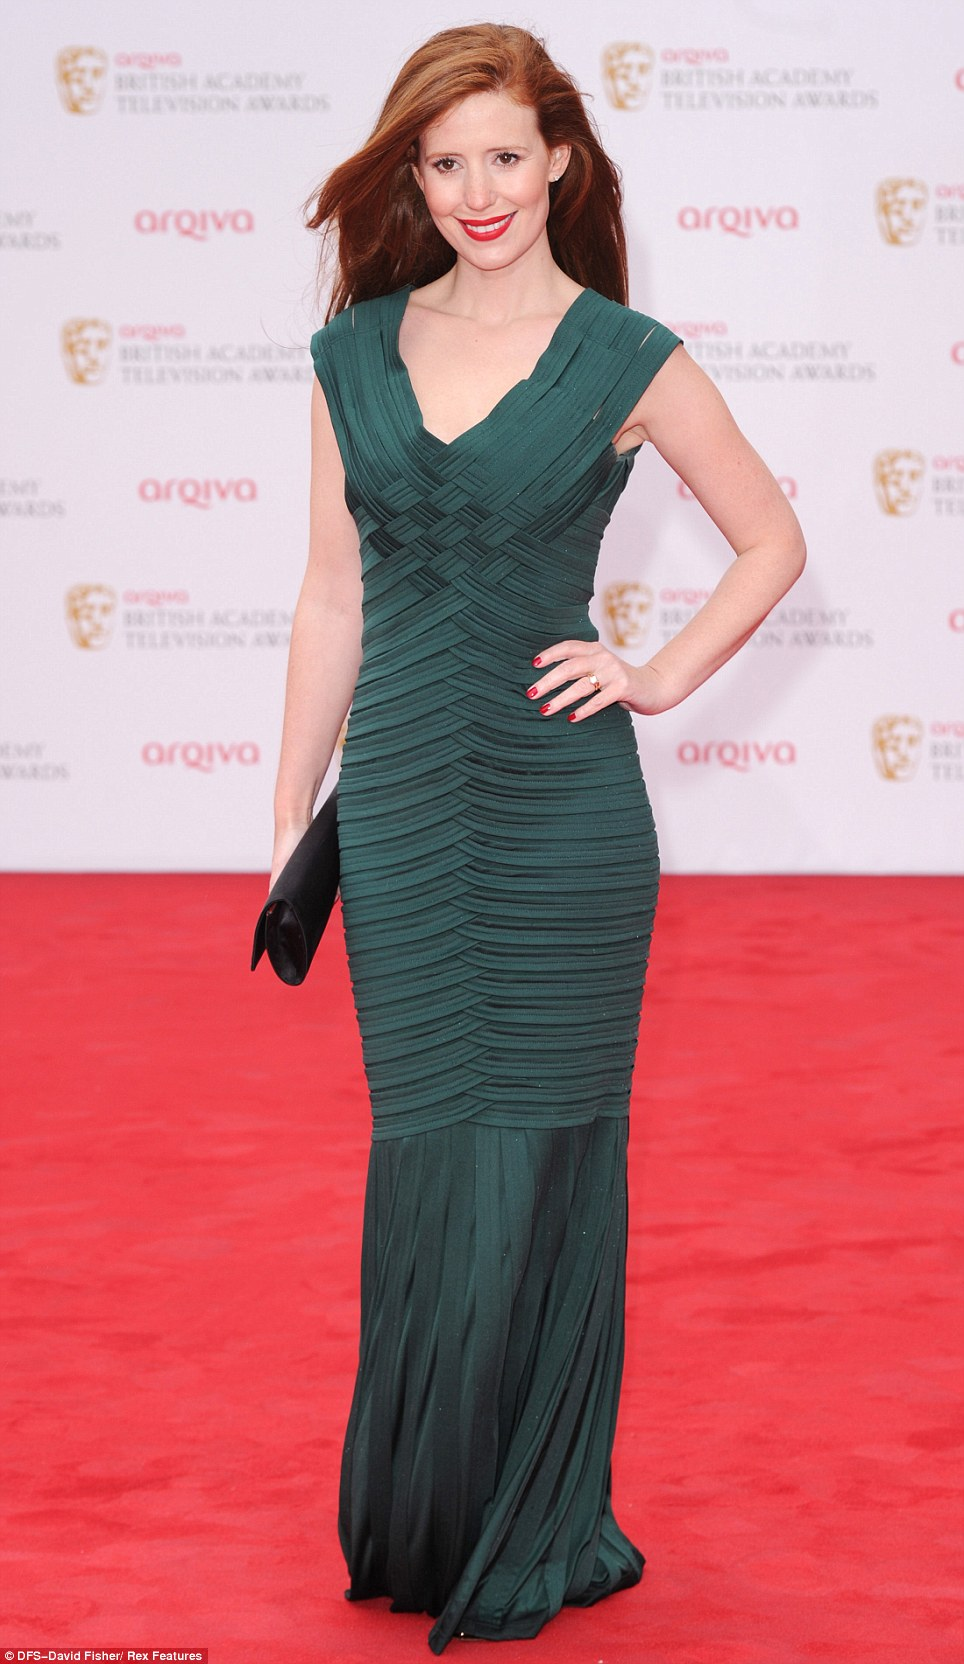 Enviable figure: Actress Amy Nuttal showed off her impressive body in a tight green outfit